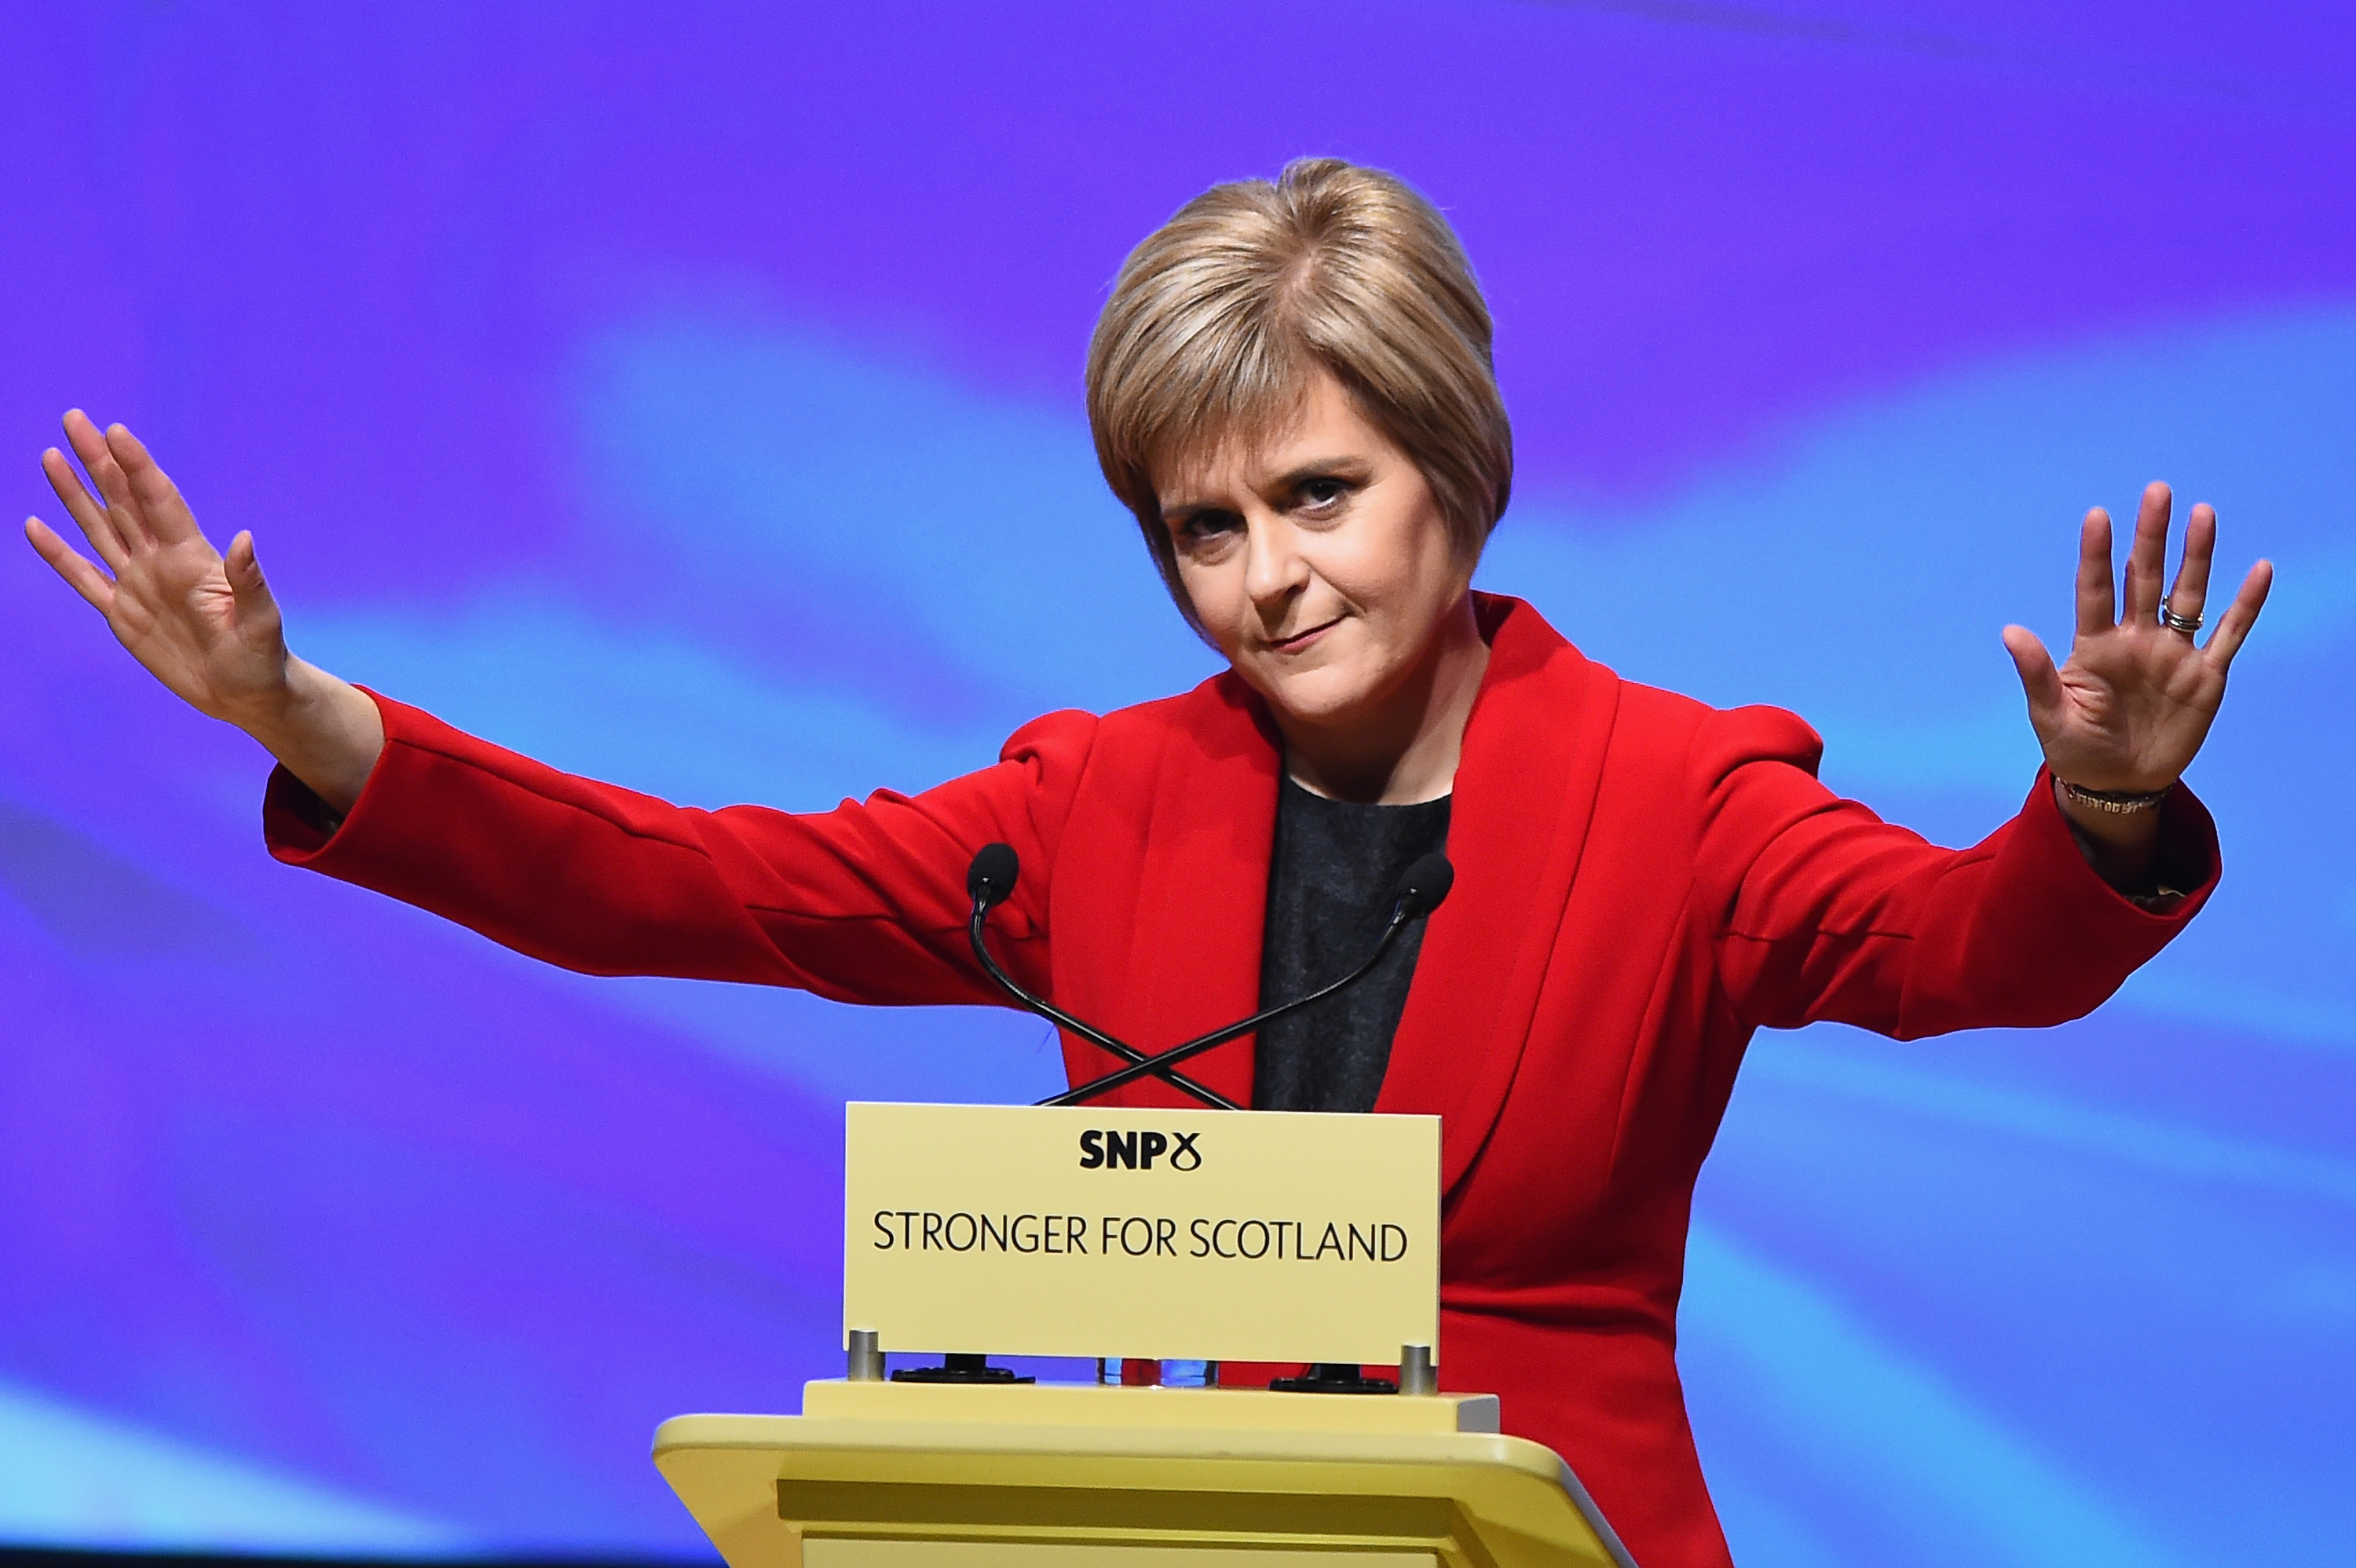 Nicola Sturgeon, gives her first key note speech as SNP party leader at the partys annual conference on November 15, 2014 in Perth, Scotland.